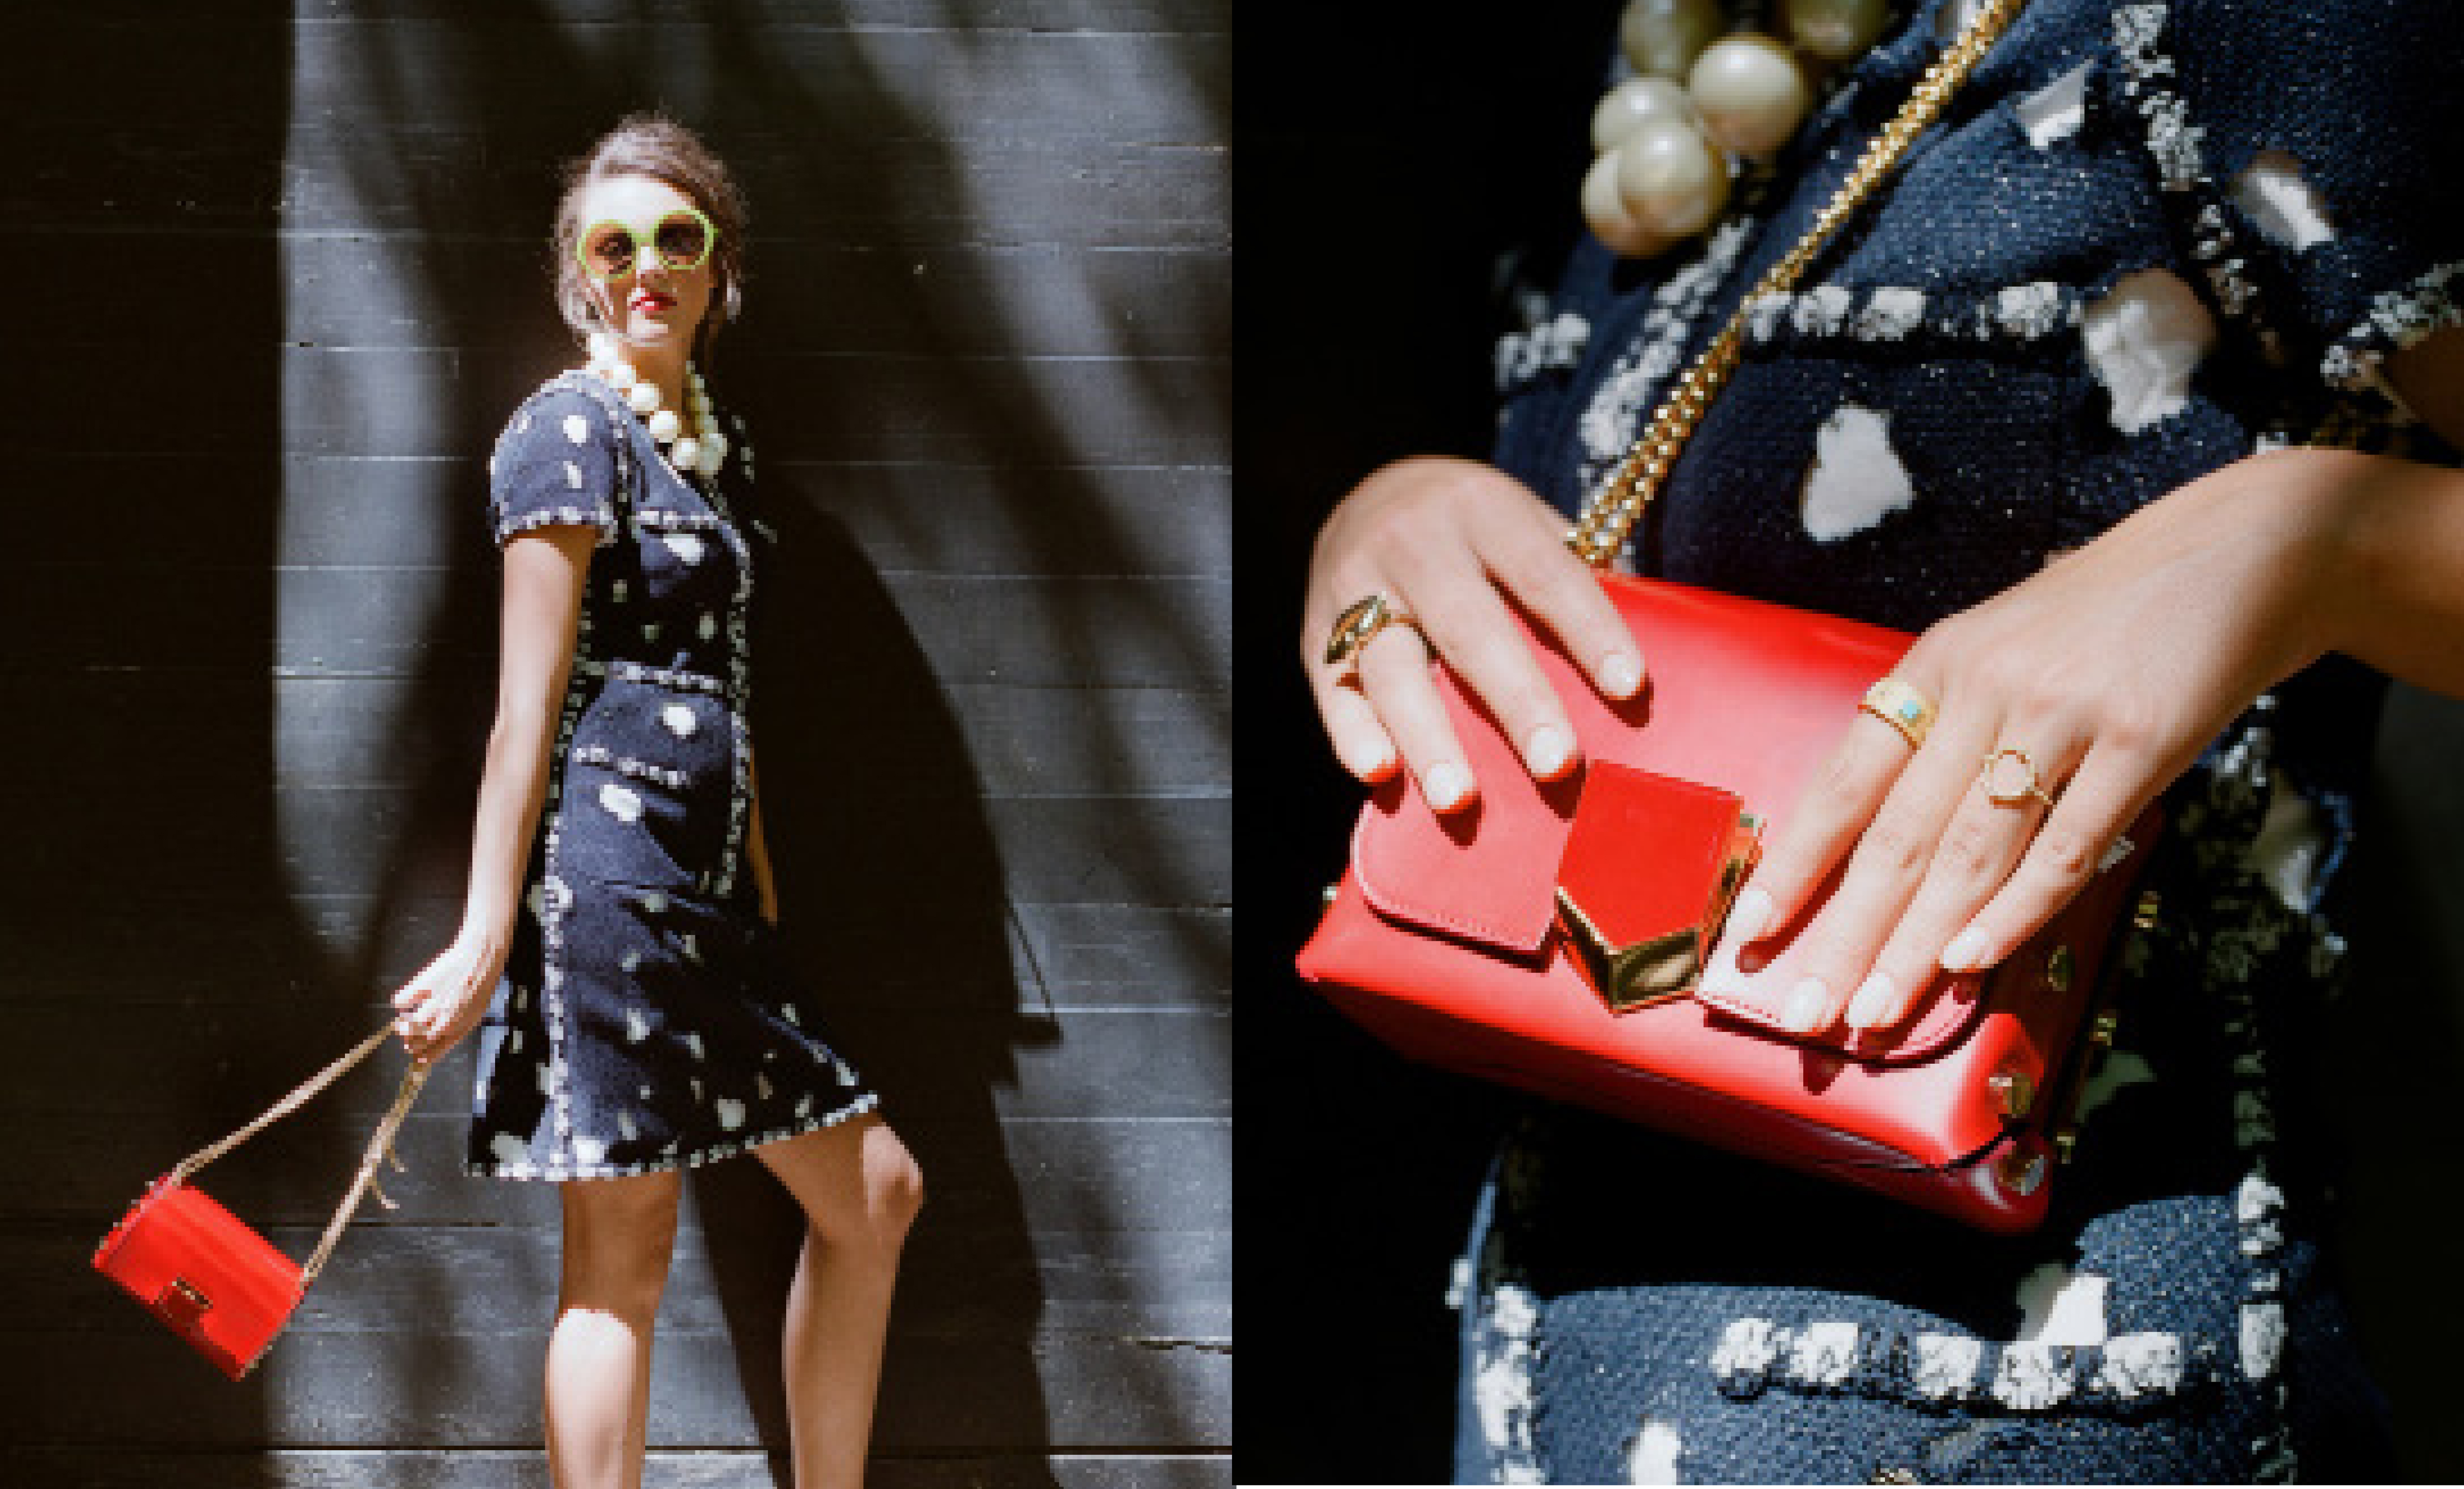 """Spot On: Chanel """"Graffiti"""" dress, $3,500, at The Trunk Show; Vintage faux pearl necklace, price upon request at Candy Shop Vintage; and Iris Apfel acetate sunglasses in """"lime,"""" $465 at Friedrich's Optik. (Opposite) Jimmy Choo """"Lockett Petite"""" spazzolato (brushed) leather shoulder bag, $1,450 at Gwynn's of Mount Pleasant; Frieda Rothman dainty circular ring, $65, and turquoise band, $175, both at Croghan's Jewel Box; and Odette NYC """"gold mouth ring,"""" $140 at Port Mercantile"""